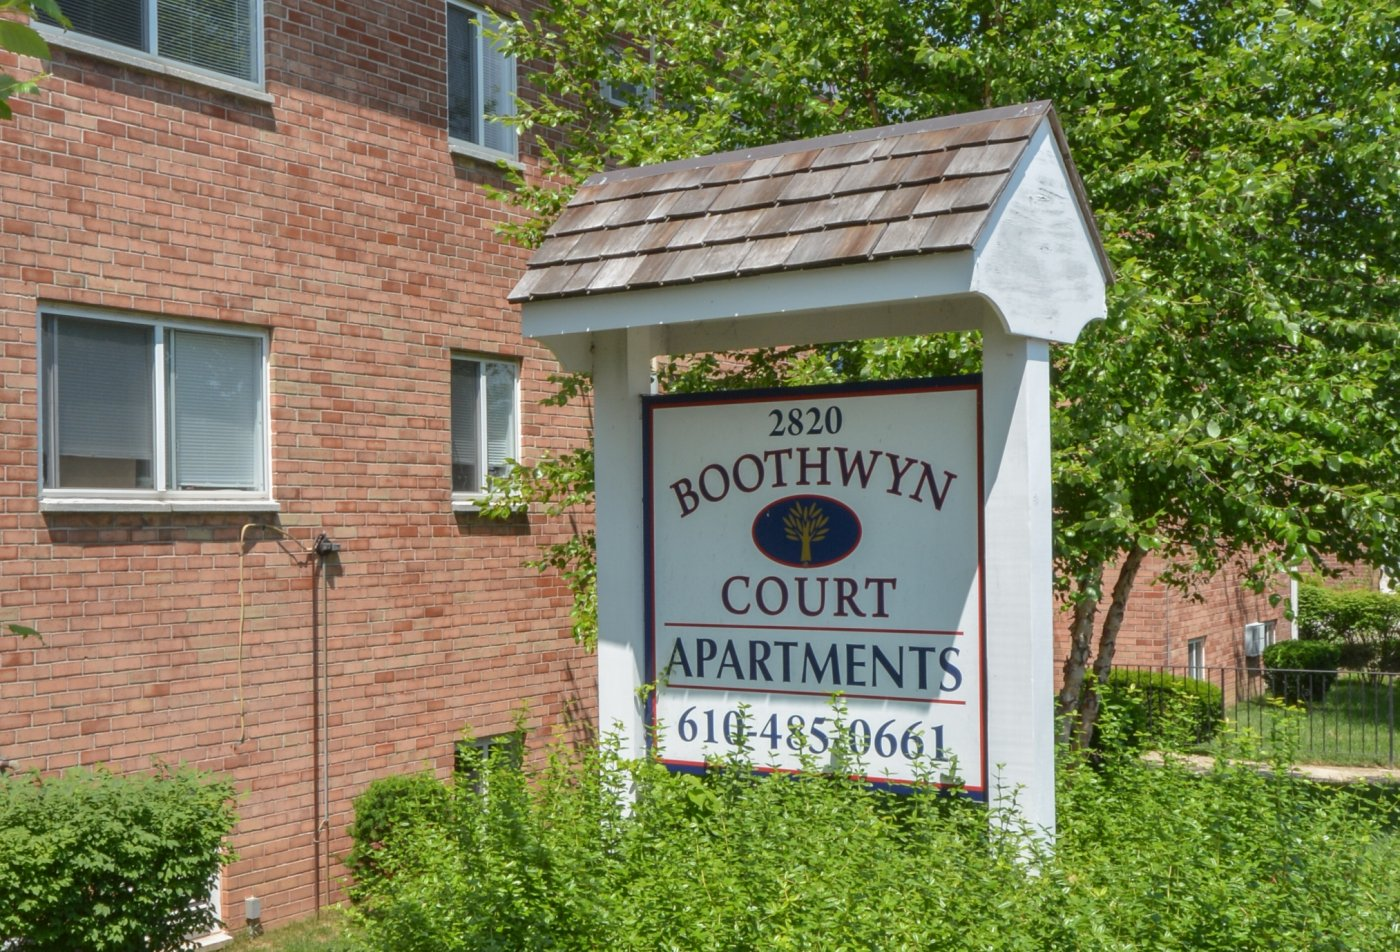 Apartments in Boothwyn, PA | Boothwyn Court Apartments